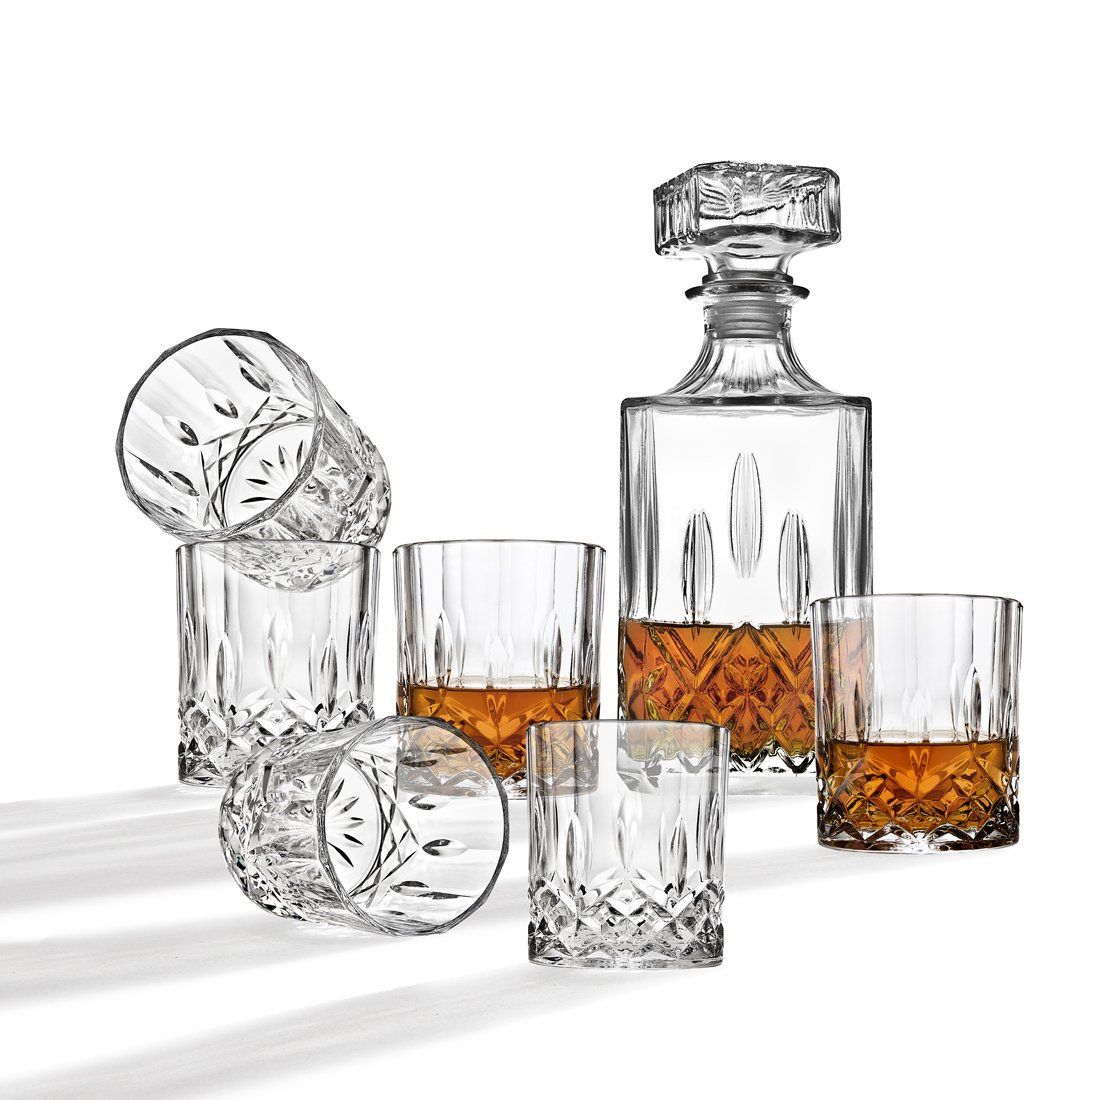 Whiskey Decanter And Glasses Bar Set, Includes Whisky Decanter And 6 Cocktail Glasses - 7 Piece Set Studio By Godinger